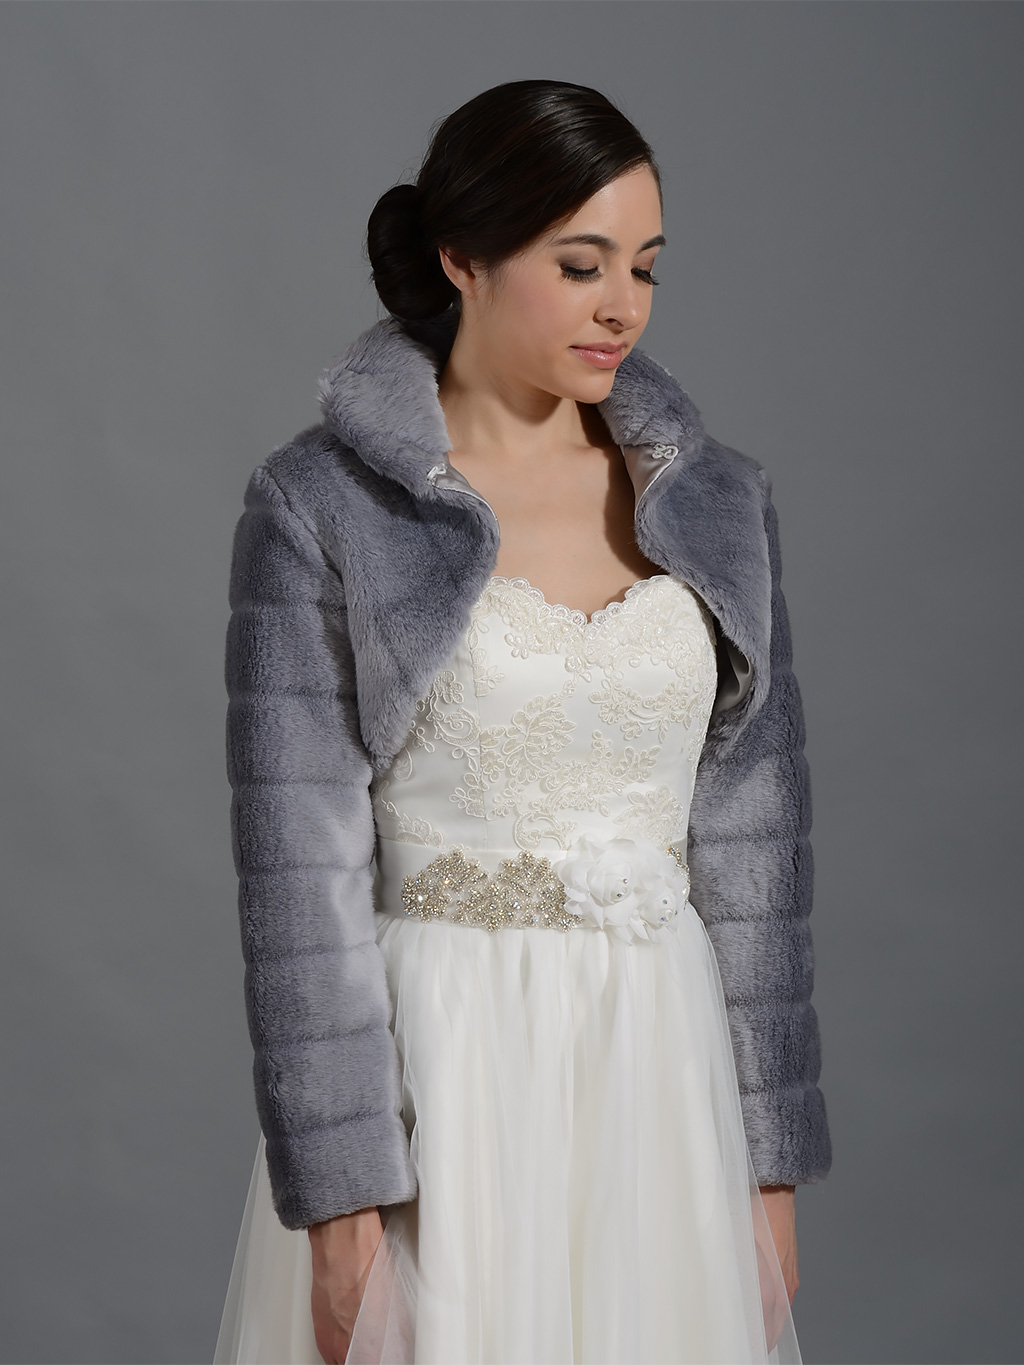 Faux fur bolero jacket 3/4 sleeve with collar in Mink bridal shrug wedding stole coat evening wrap FBA AVL in white and 2 other colors Girls Navy Blue Faux Fur Wrap, faux fur shrug, 3 sizes NF-FG-NBLUE because here they come. There are faux fur shrug for sale on Etsy, and they cost $ on average. The most common faux fur.